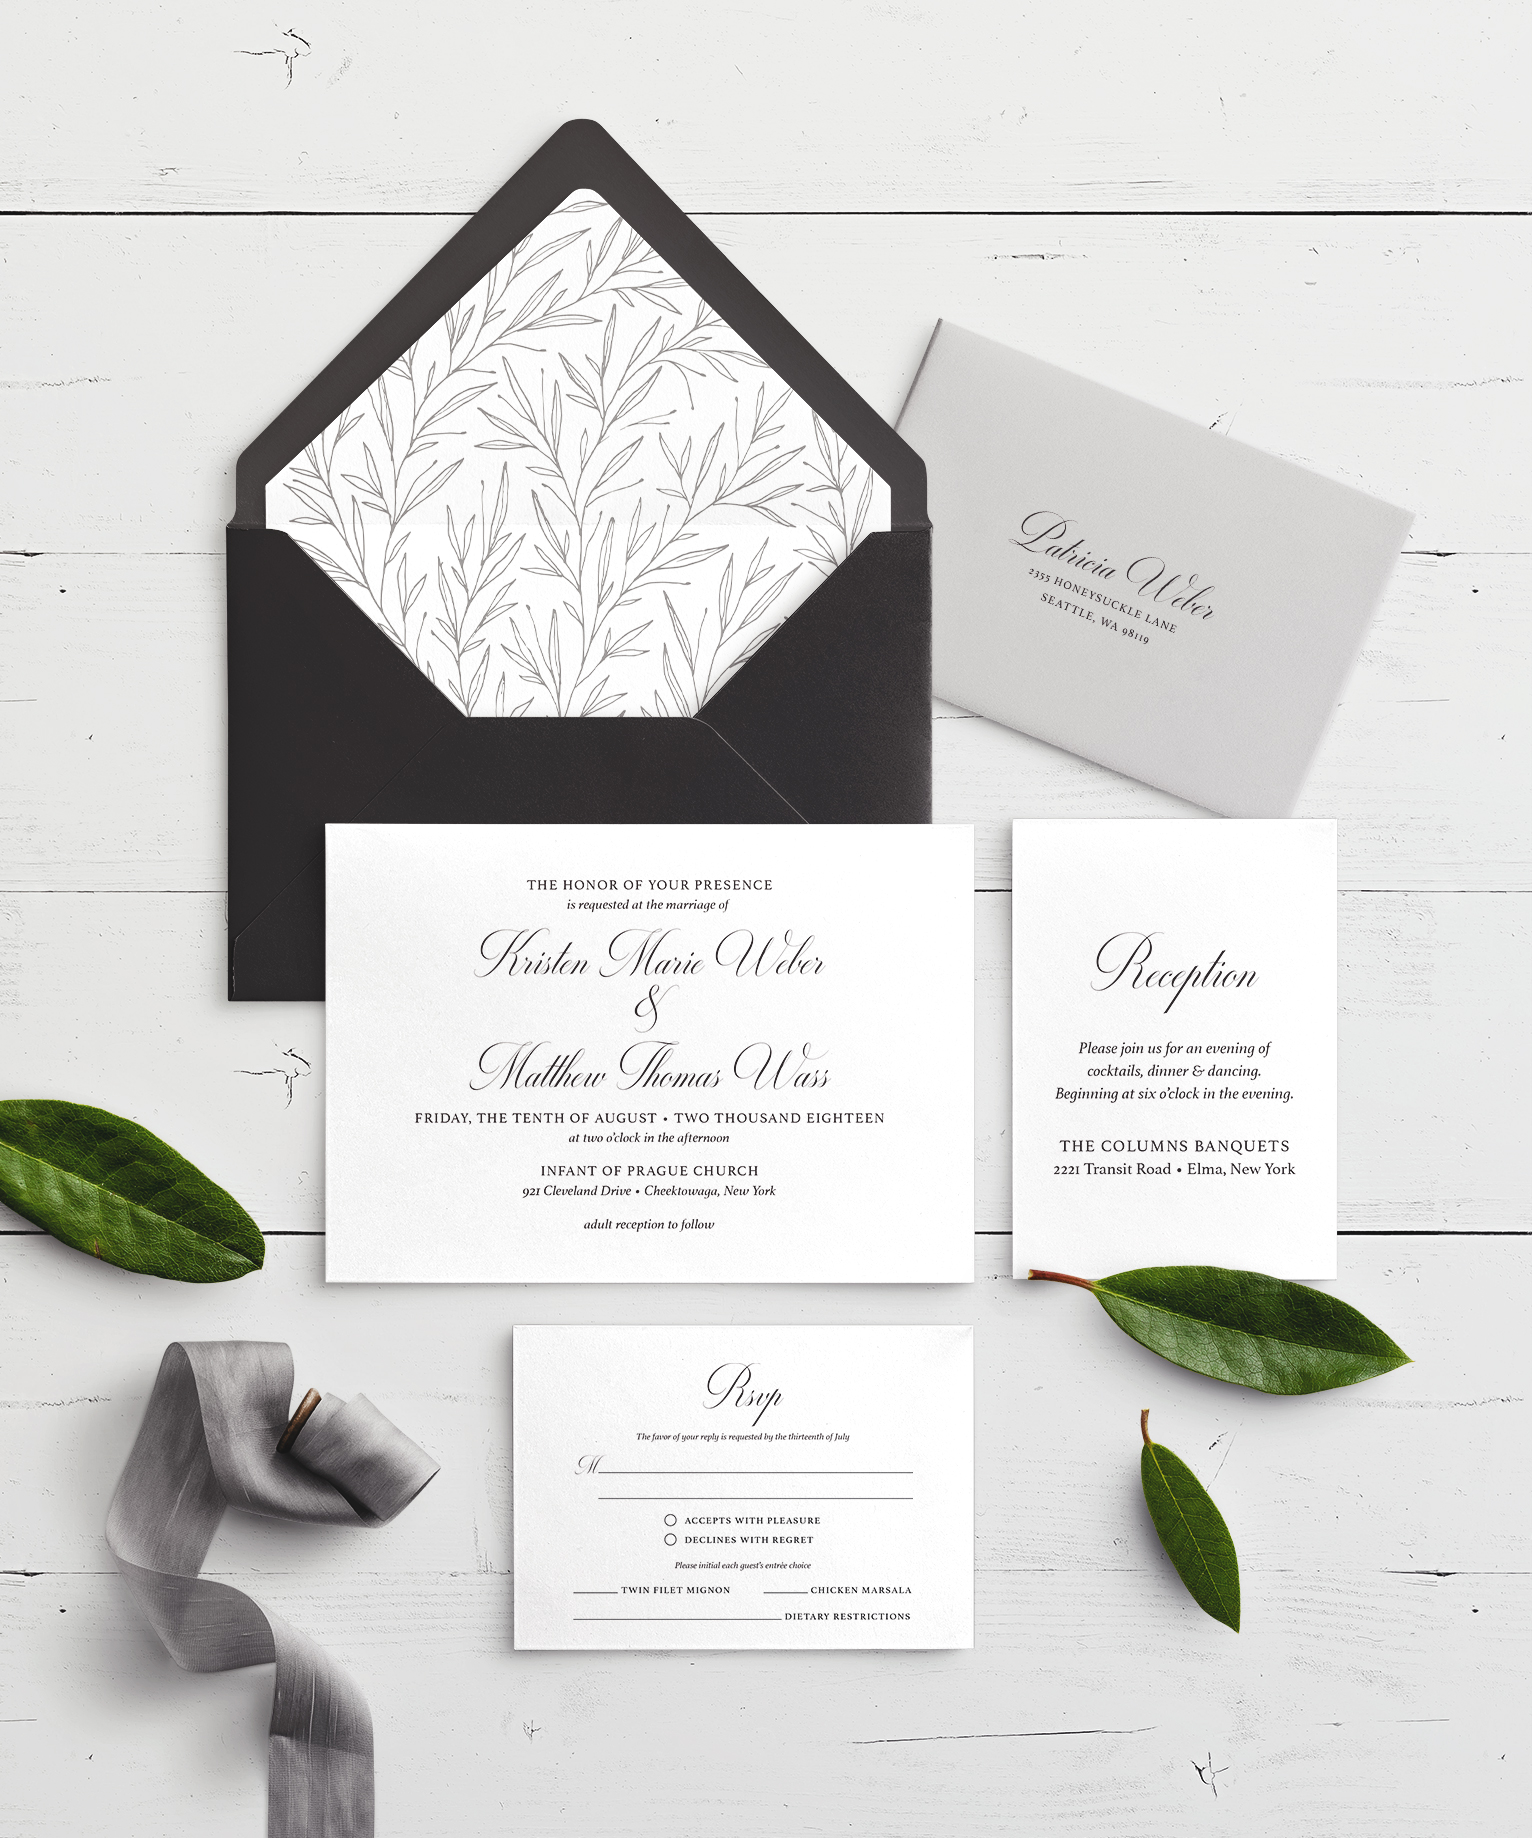 Kristen-wedding-invitation